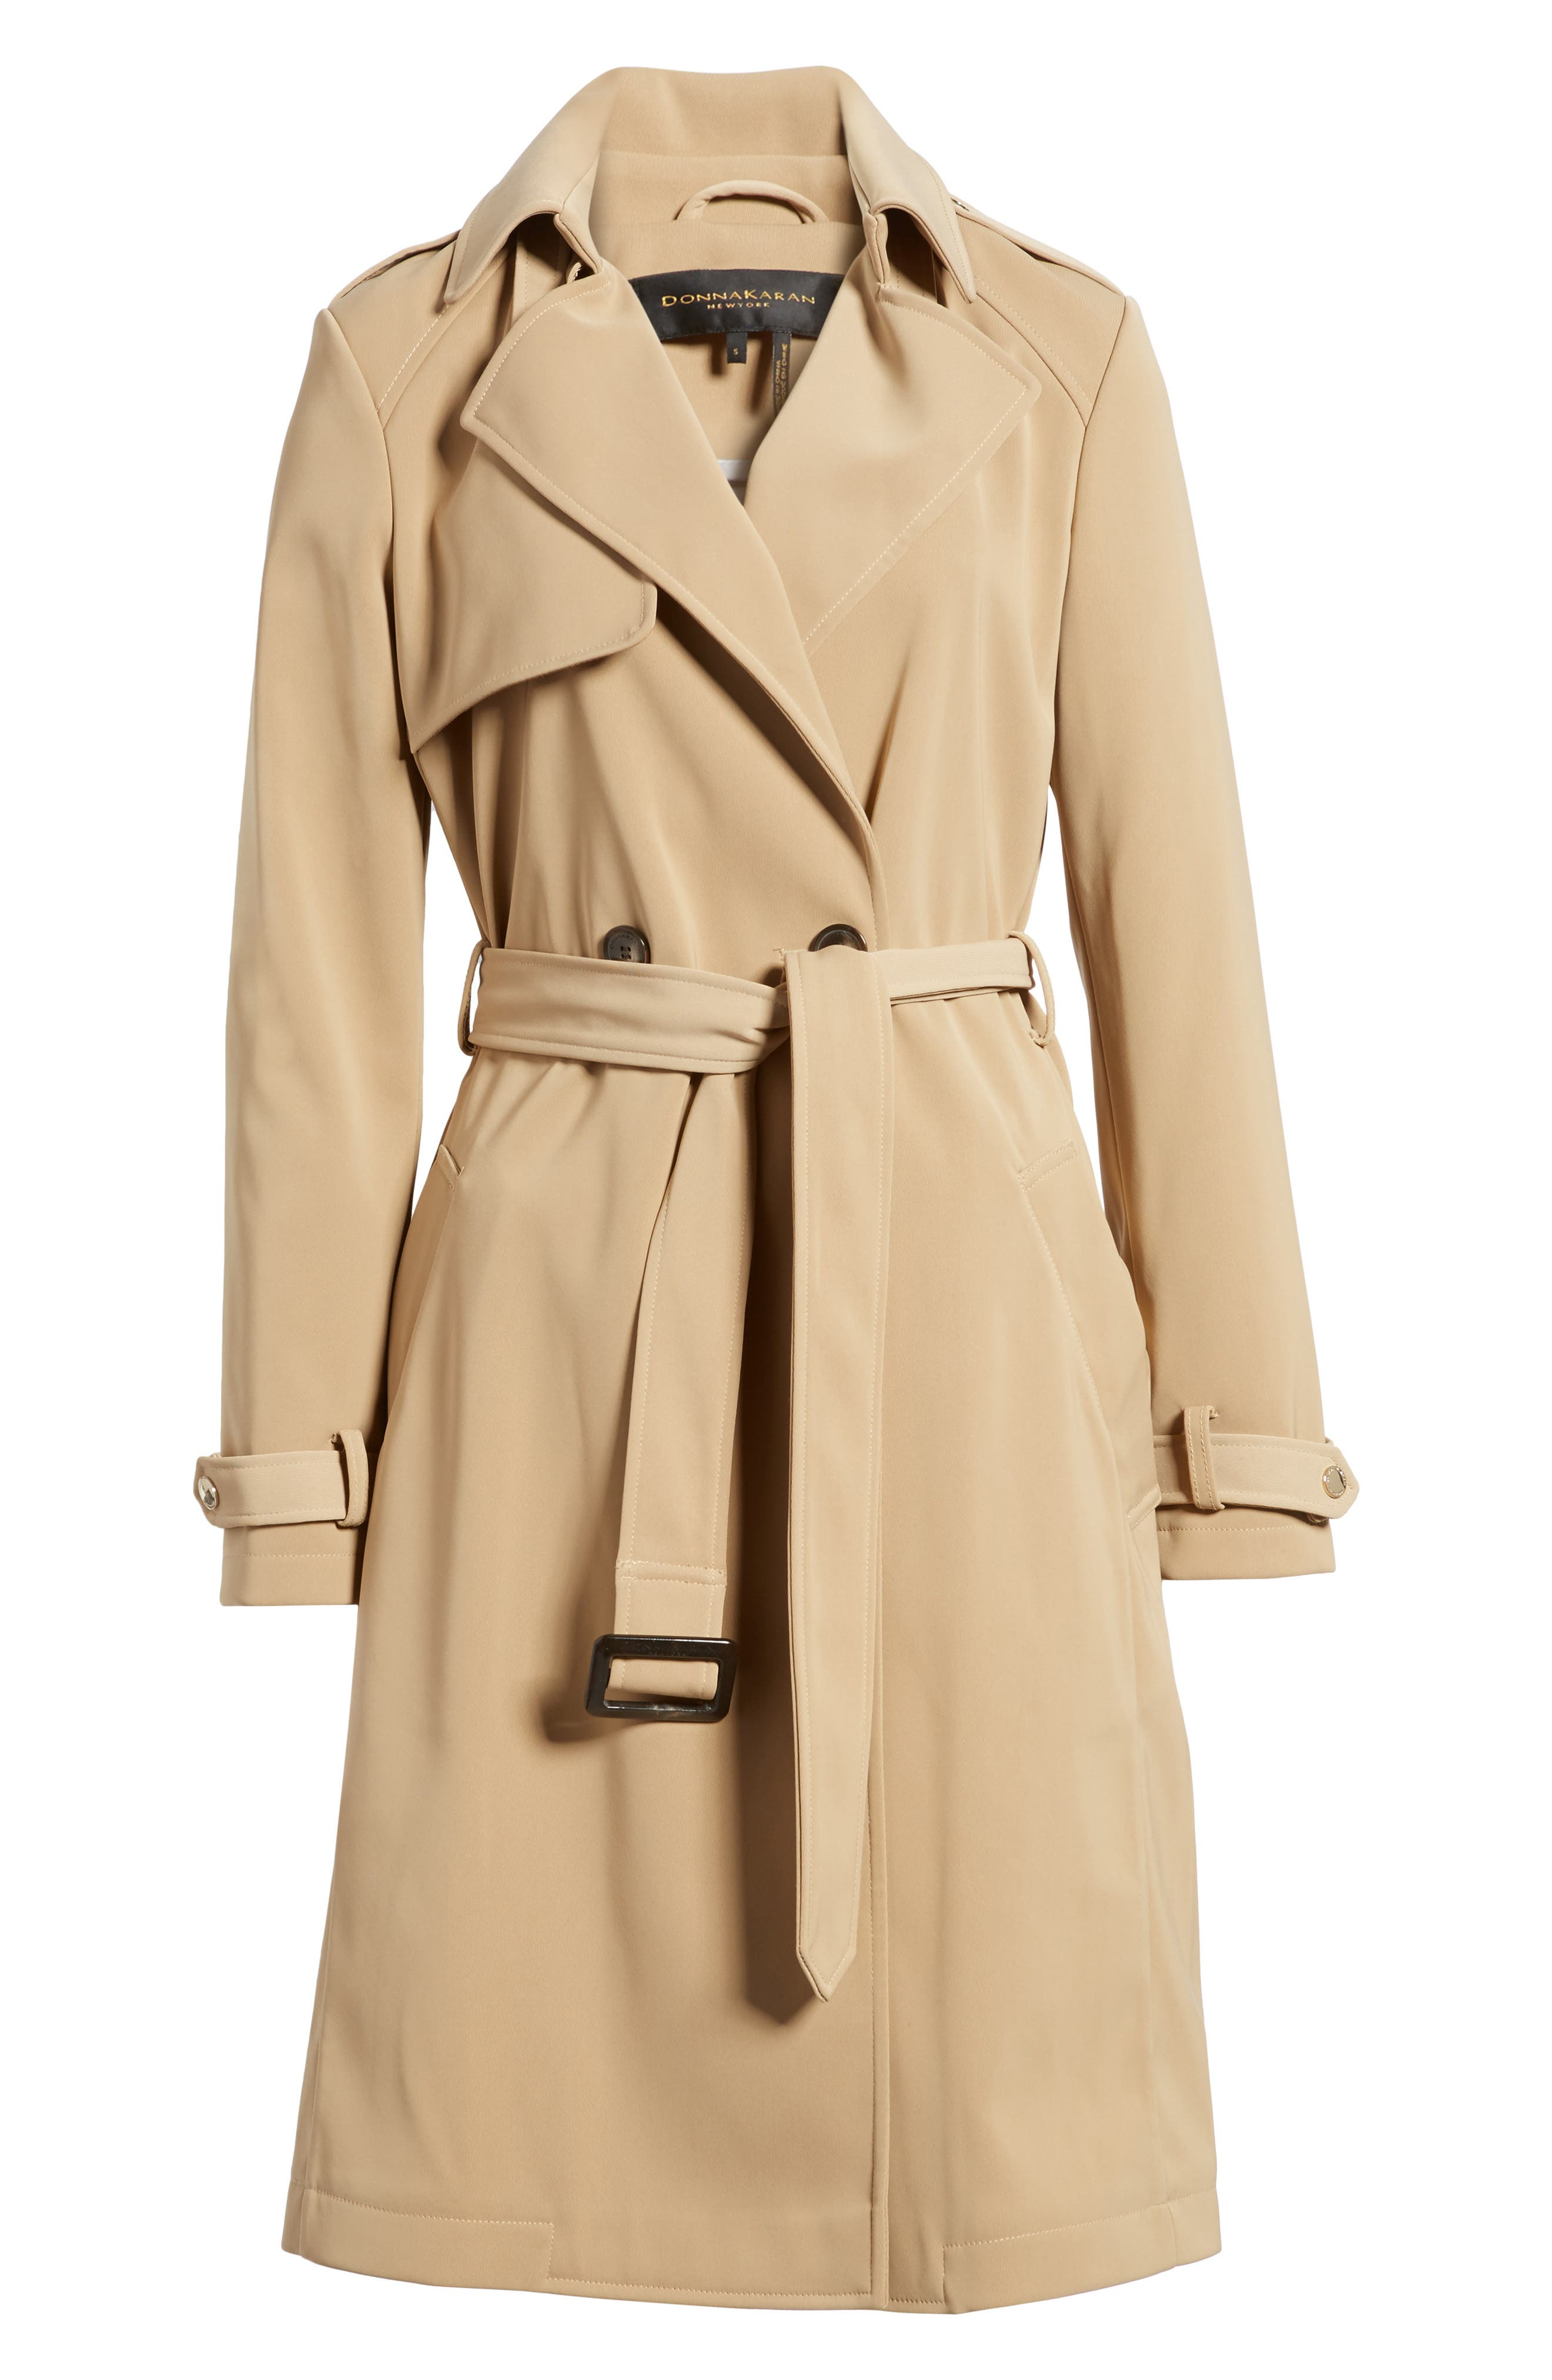 DKNY French Twill Water Resistant Trench Coat,                             Main thumbnail 1, color,                             Khaki